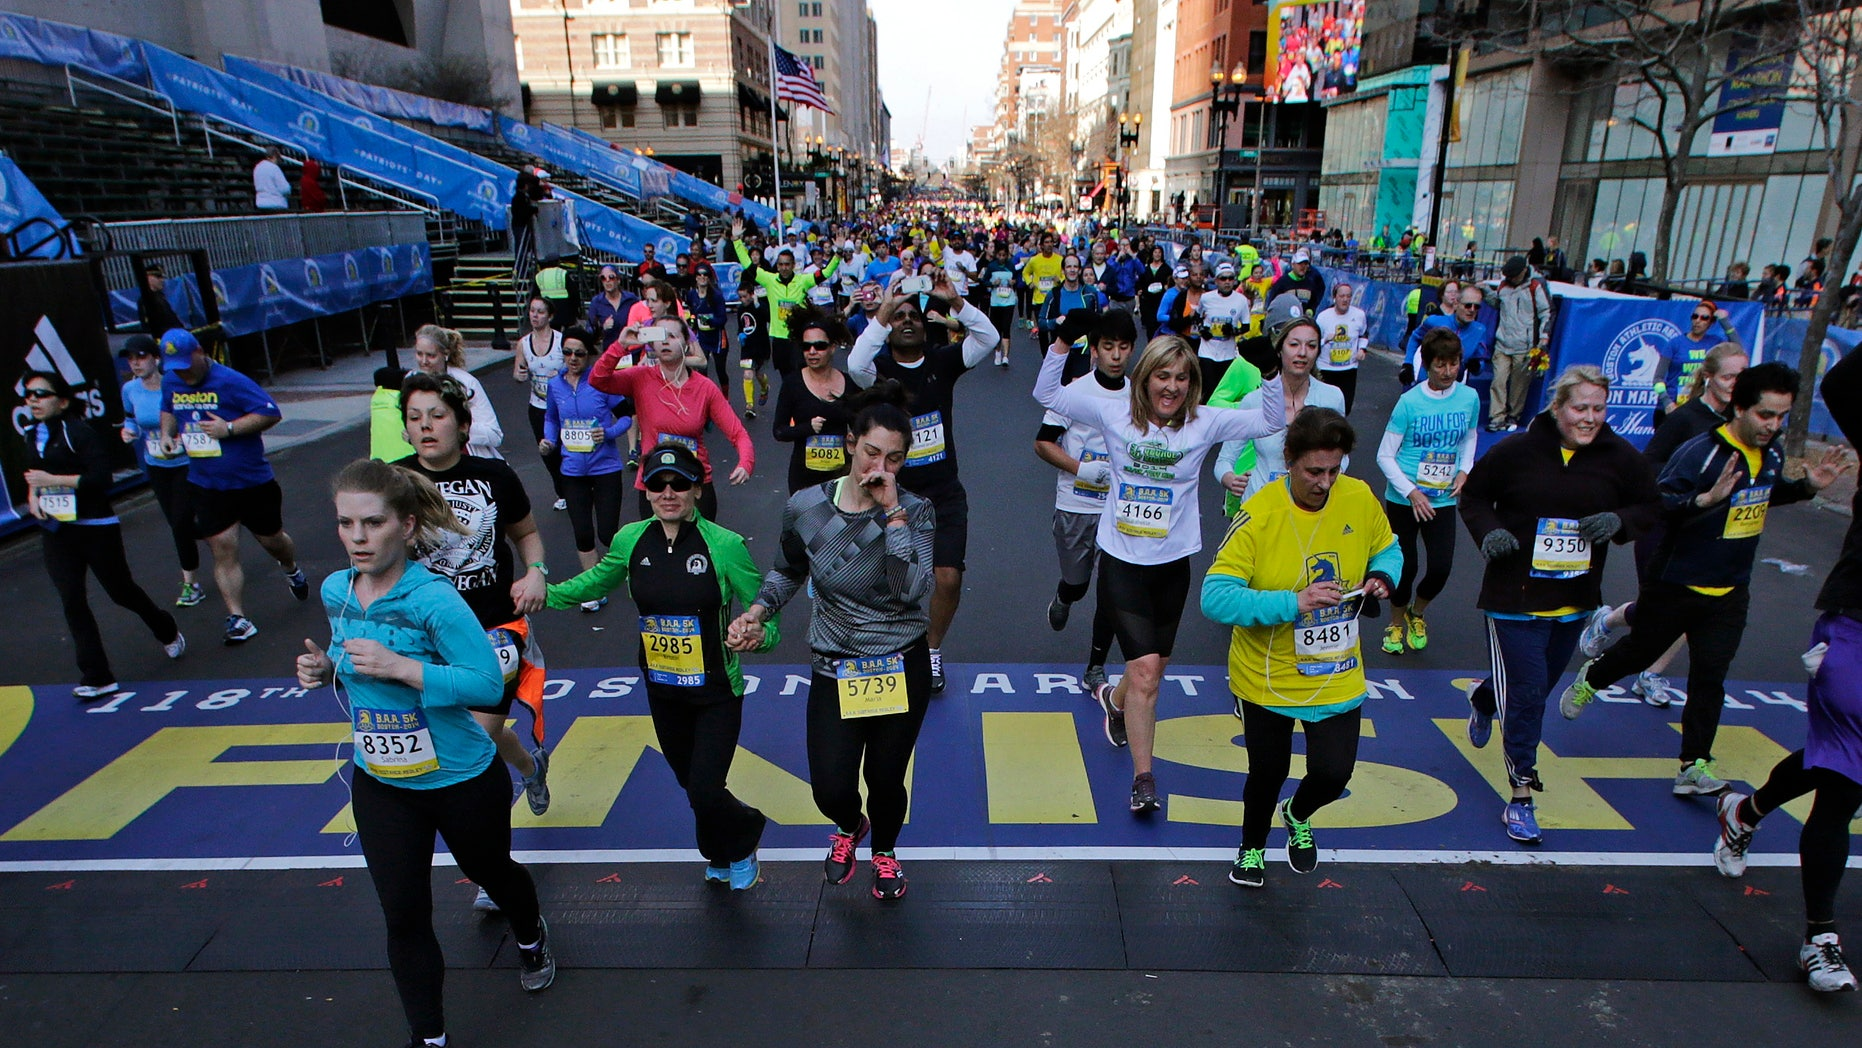 At the midpoint of the 5K race, runners cross the finish line of the Boston Marathon, Saturday, April 19, 2014, in Boston.